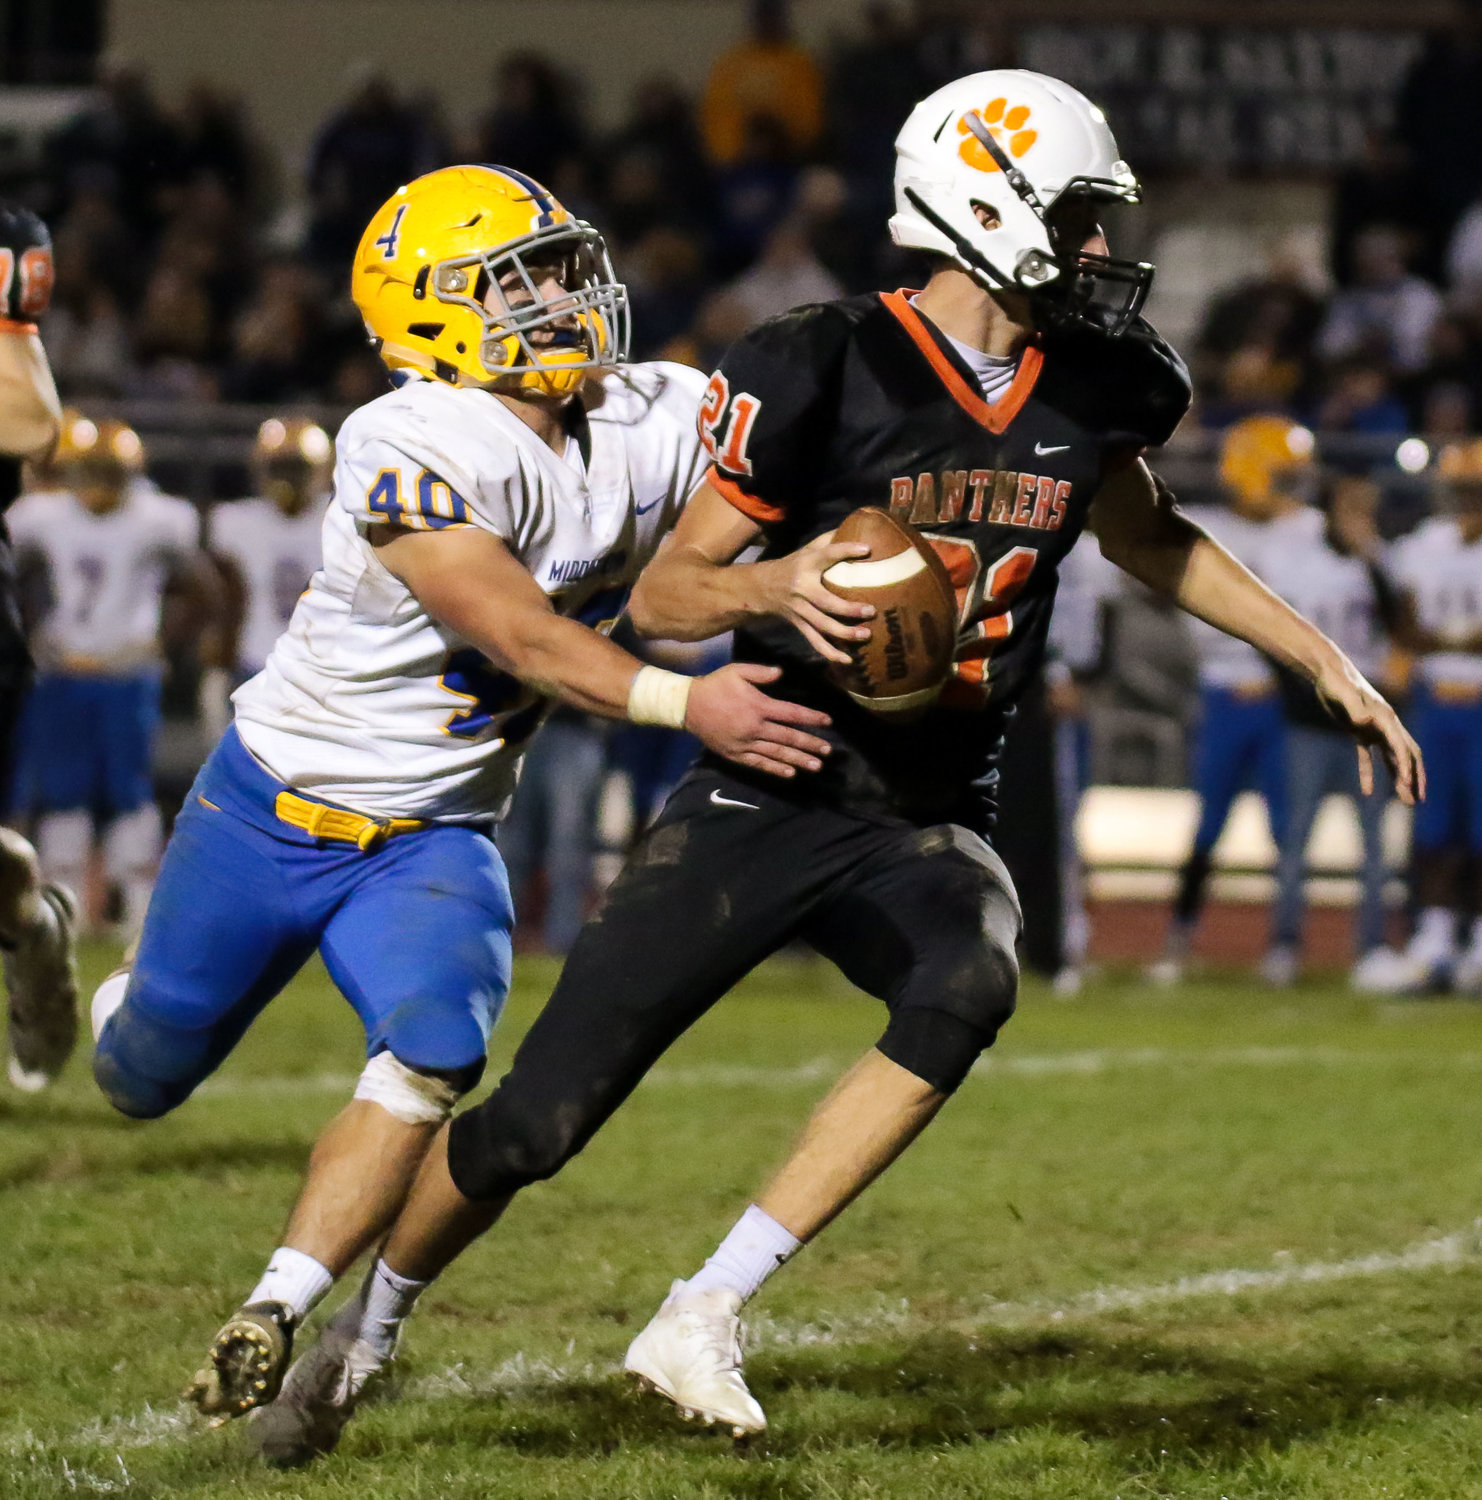 Gage Radabaugh goes in for the tackle Oct. 19 vs. East Pennsboro.